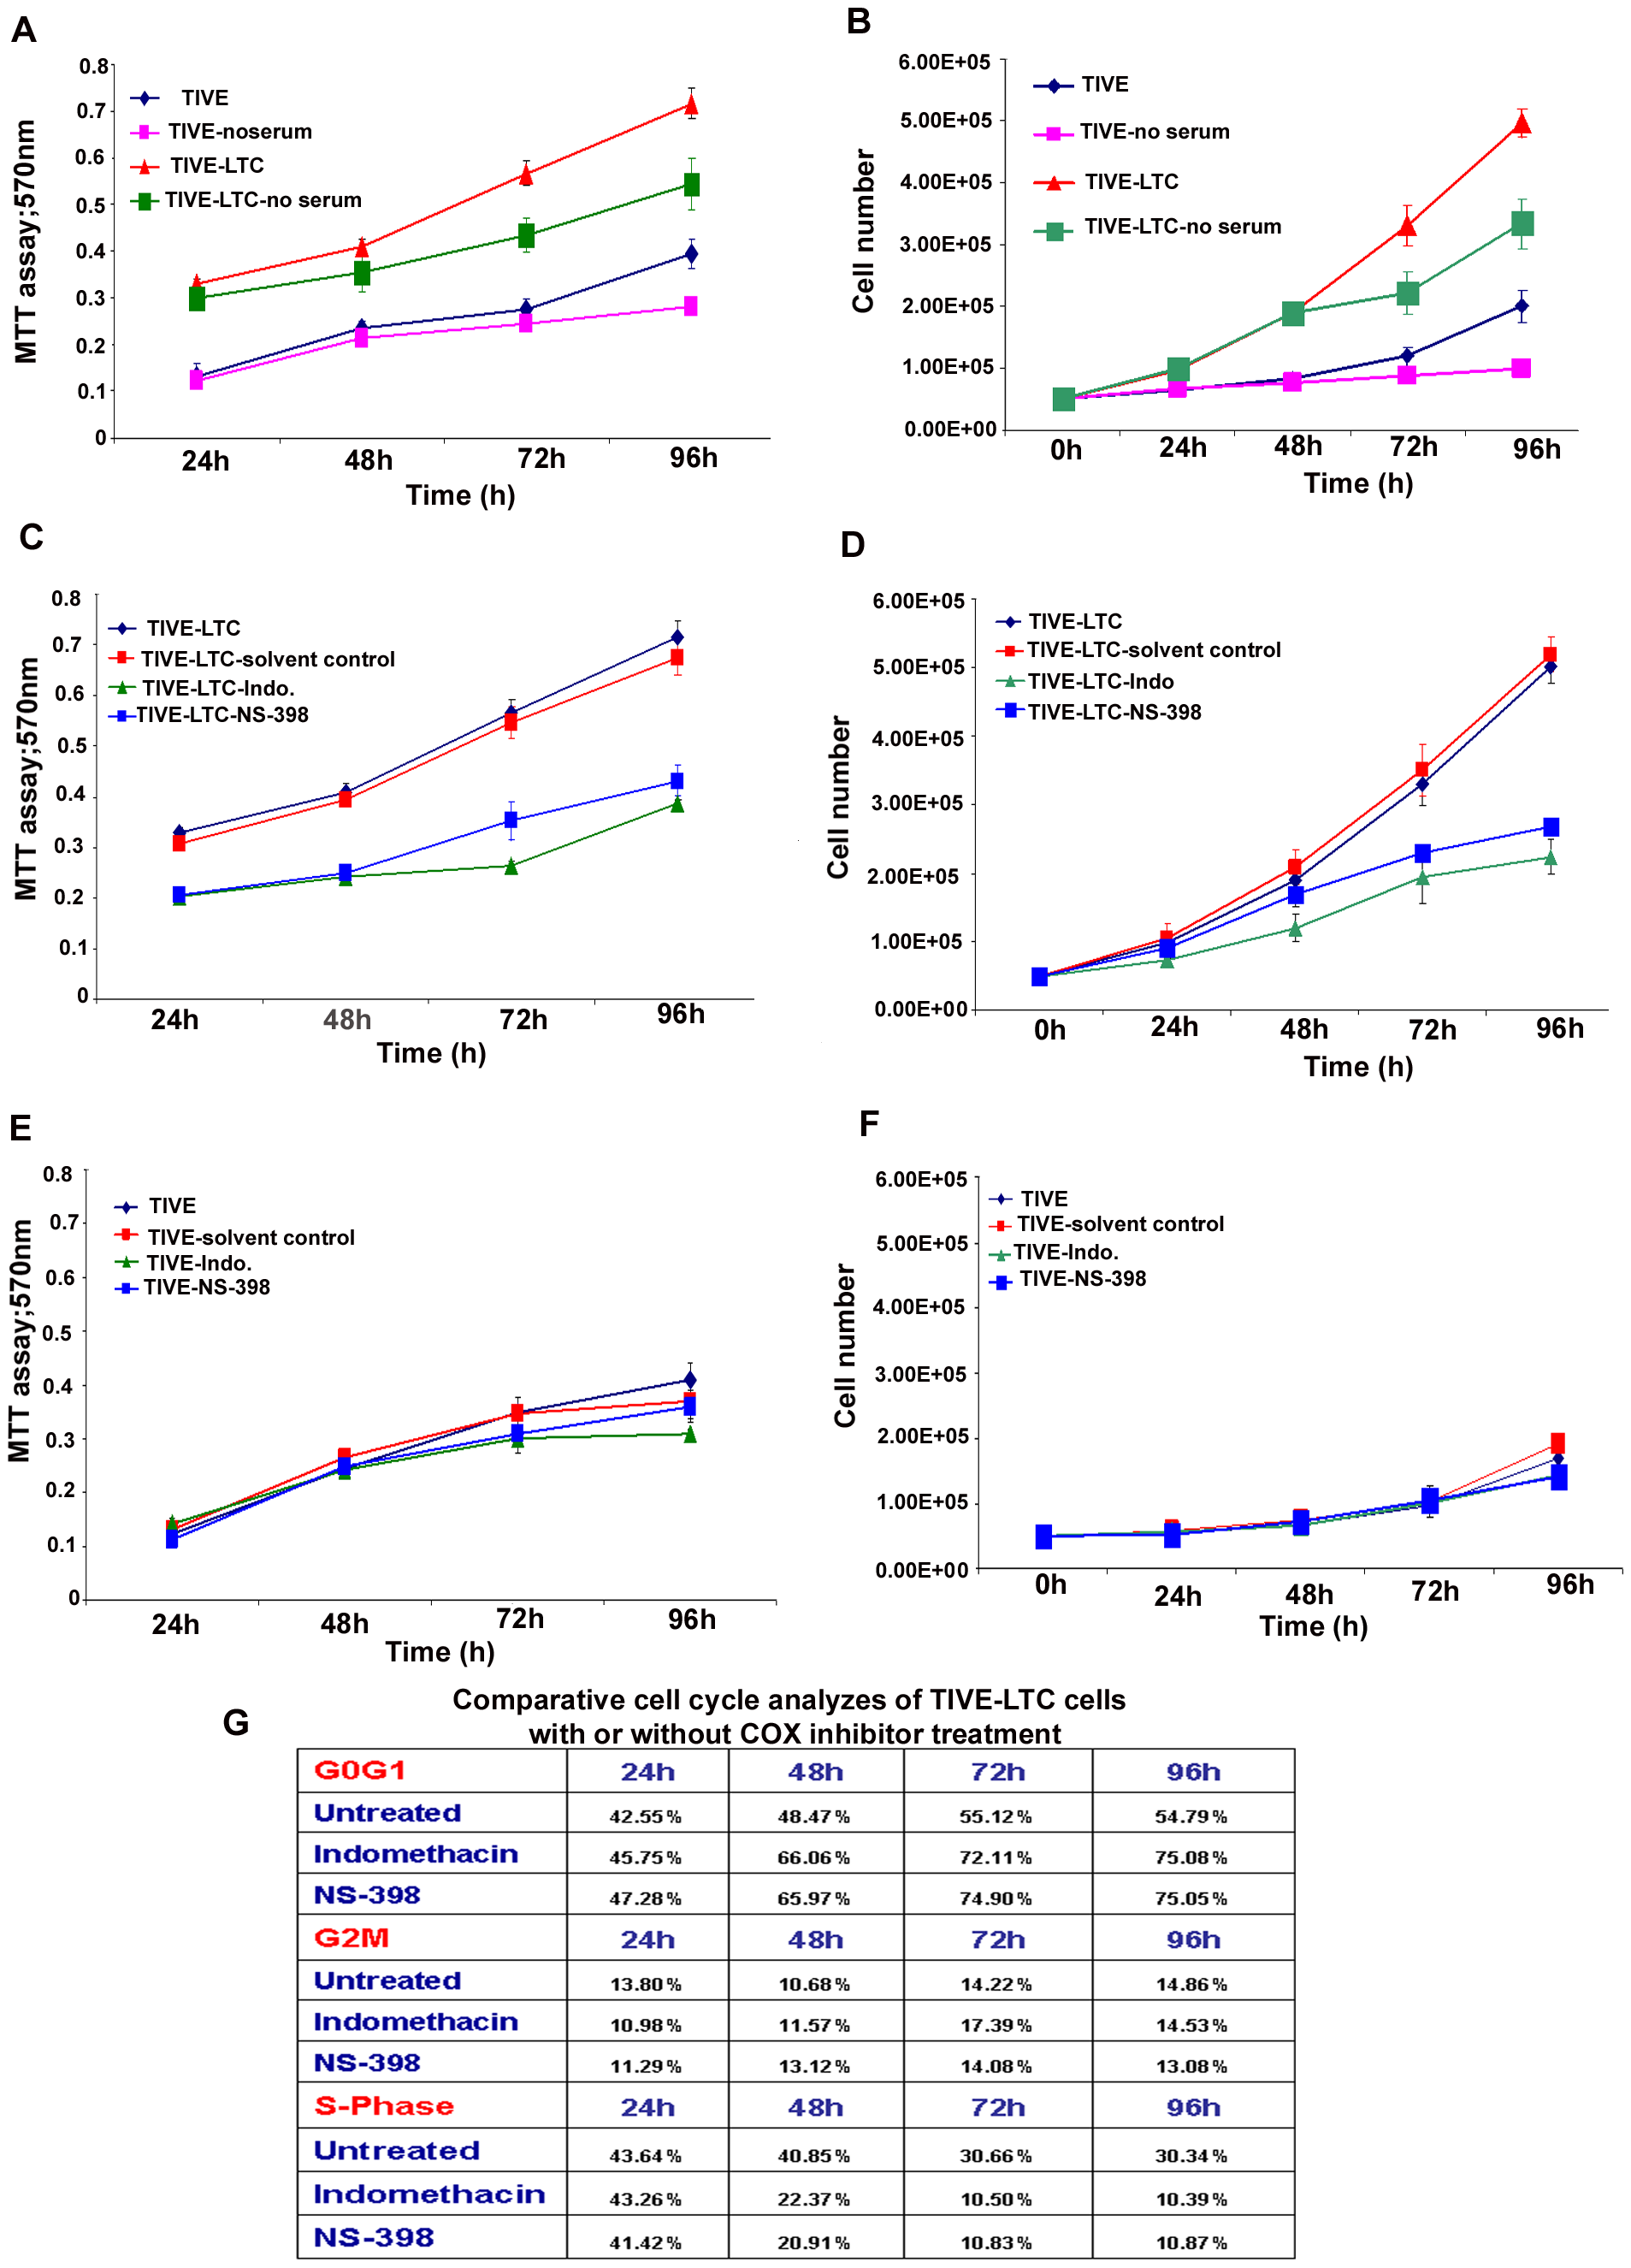 Effect of COX-2 inhibition on cell survival and cell cycle profile of latently infected TIVE-LTC cells.